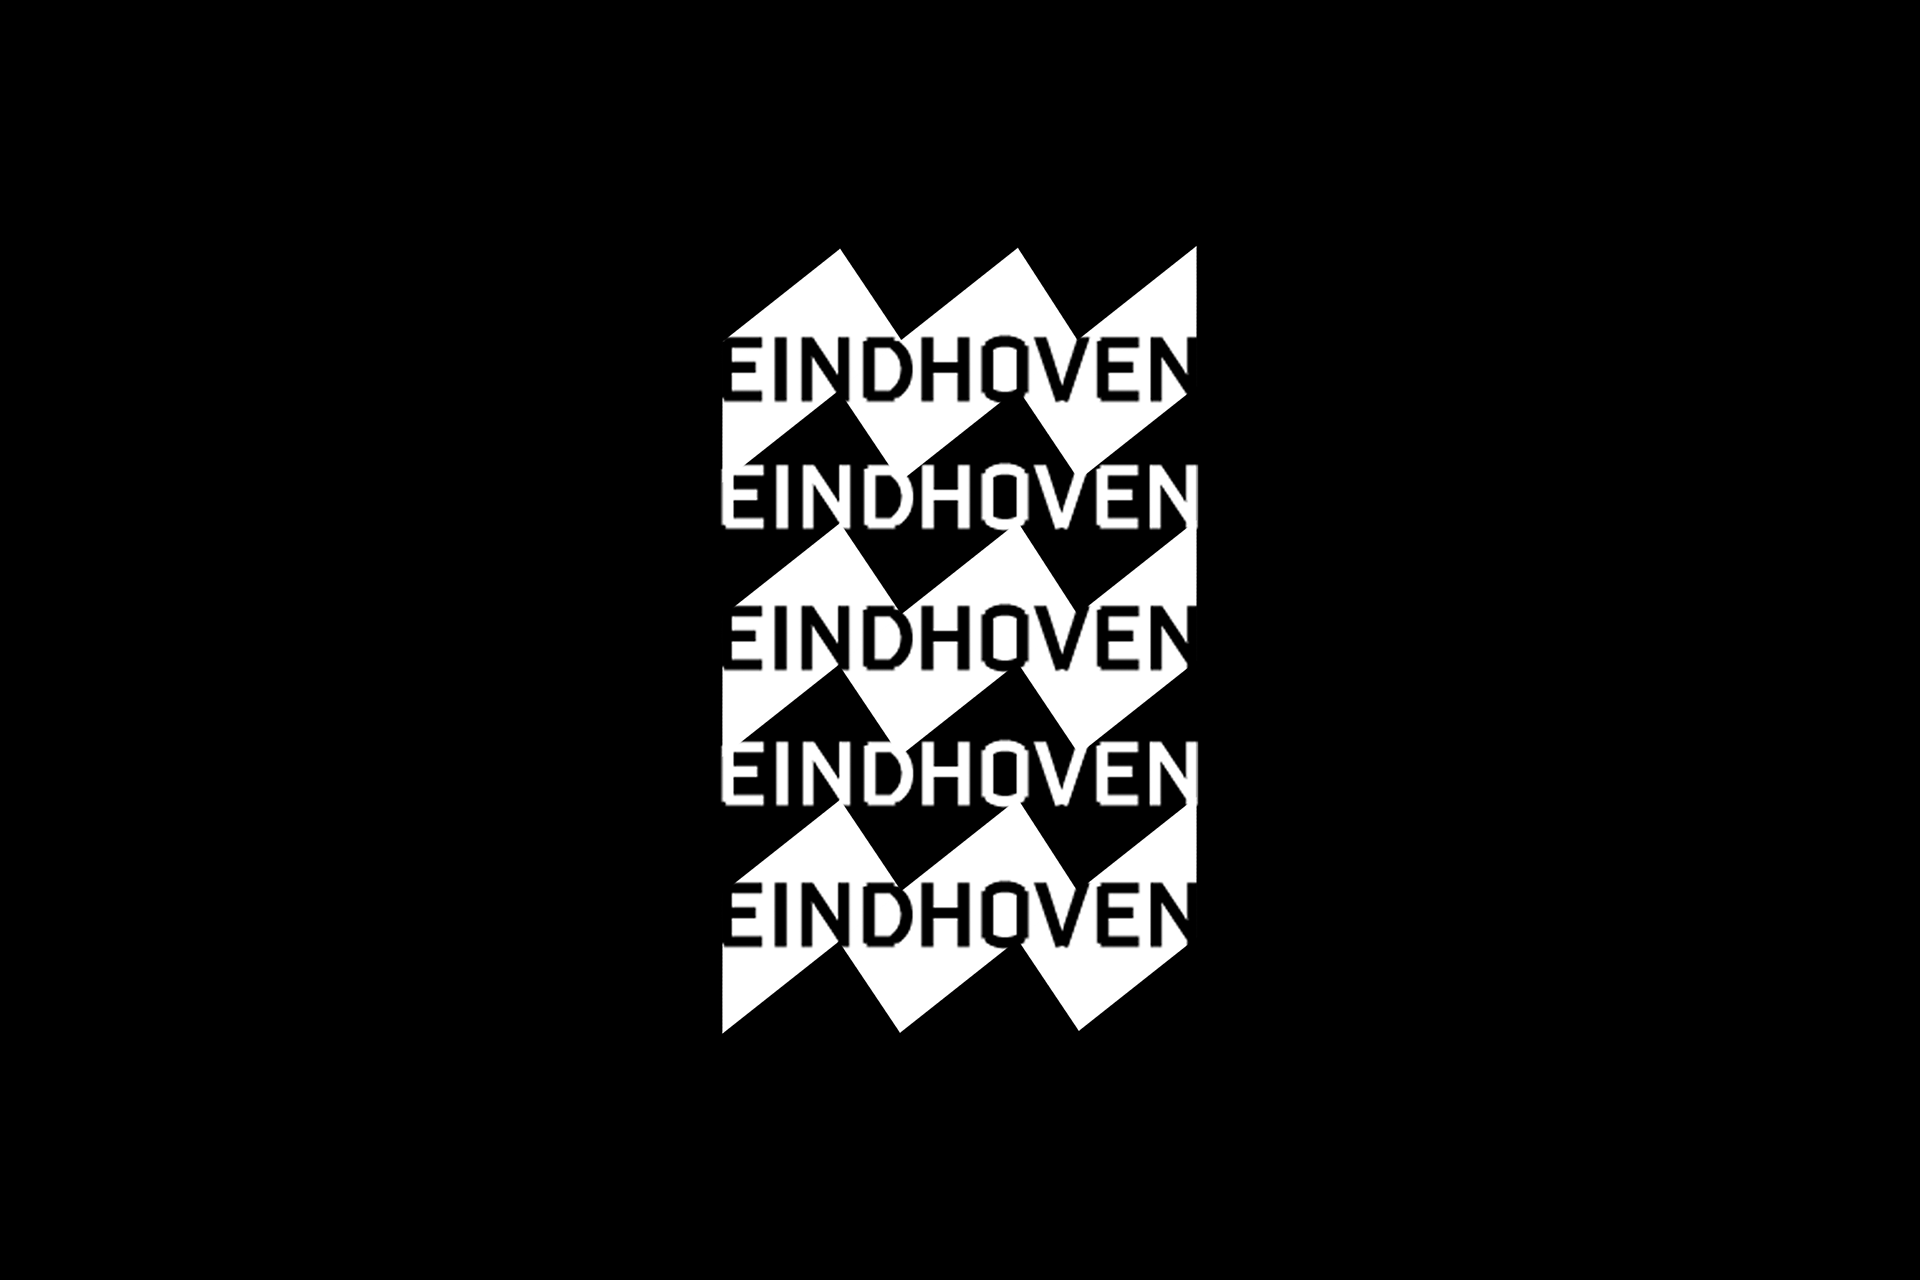 eindhovencover